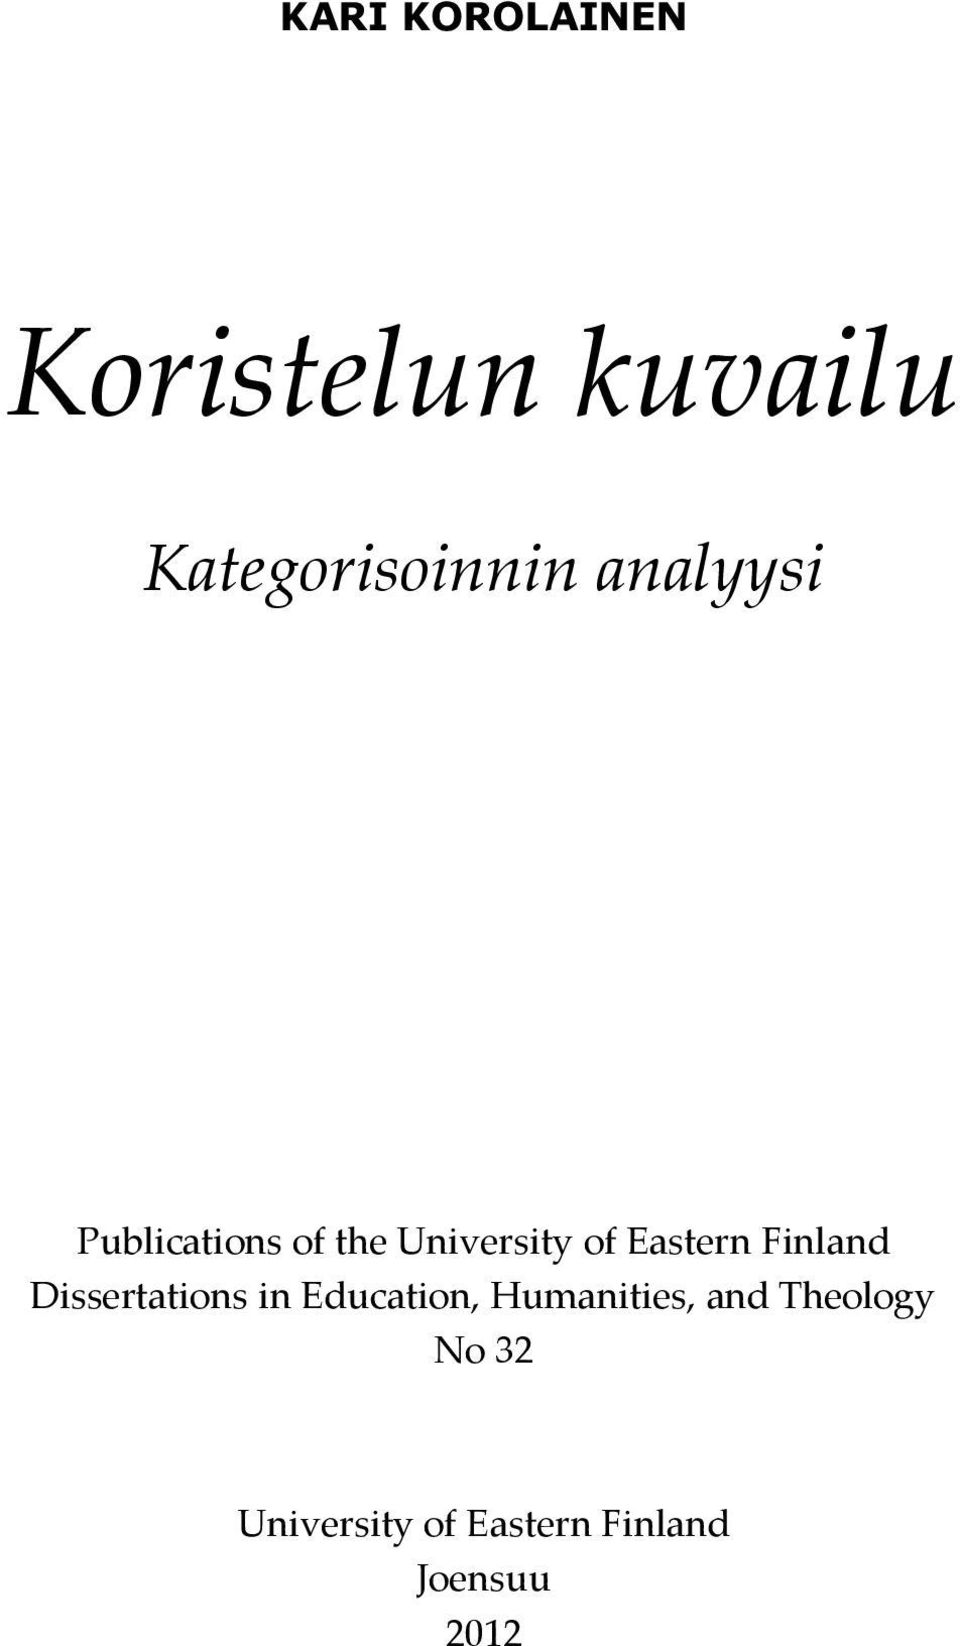 Finland Dissertations in Education, Humanities, and